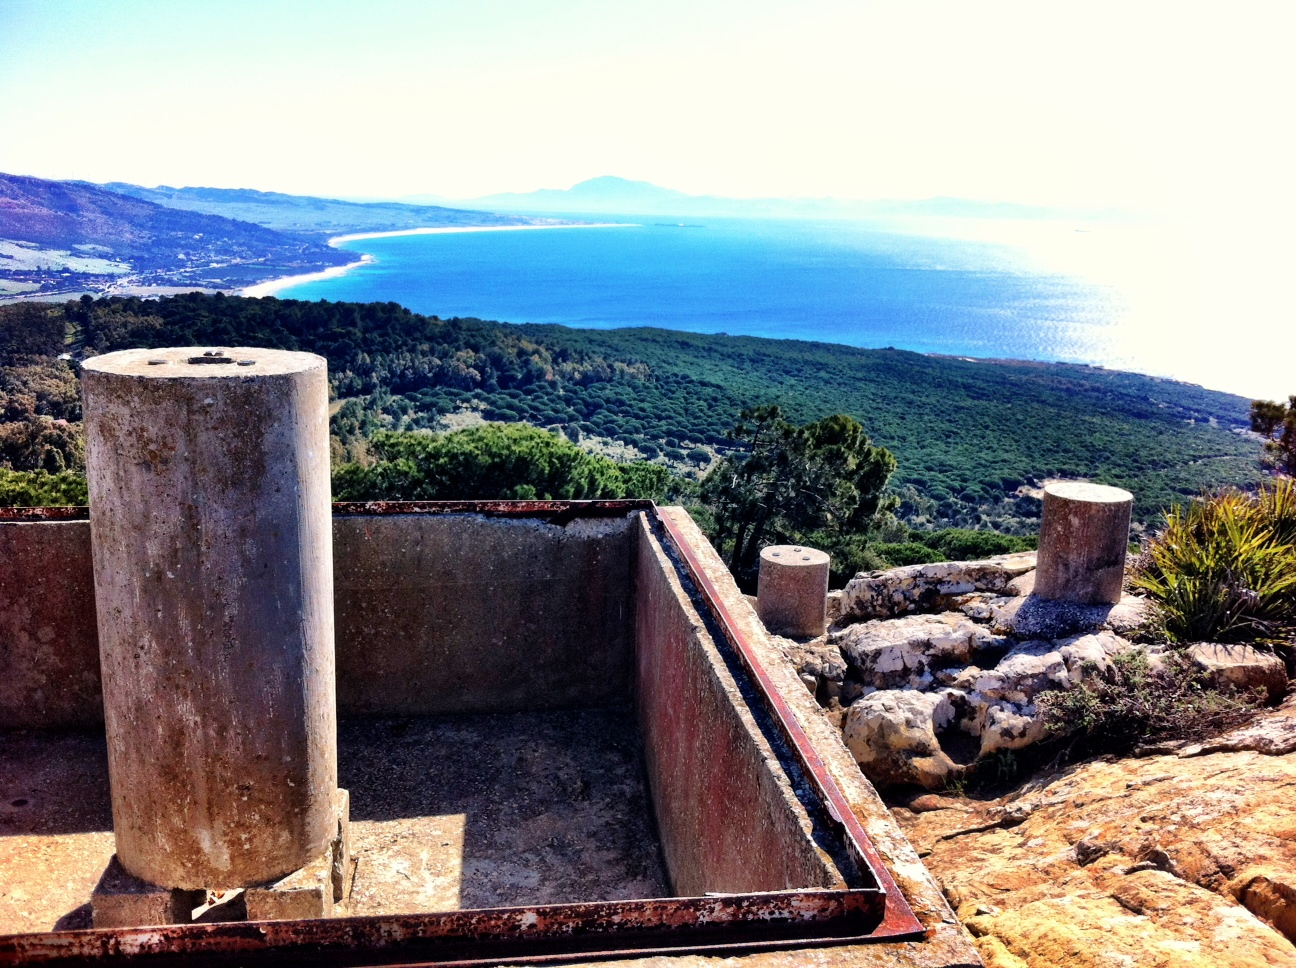 A trig point, Palomo Alta near Tarifa